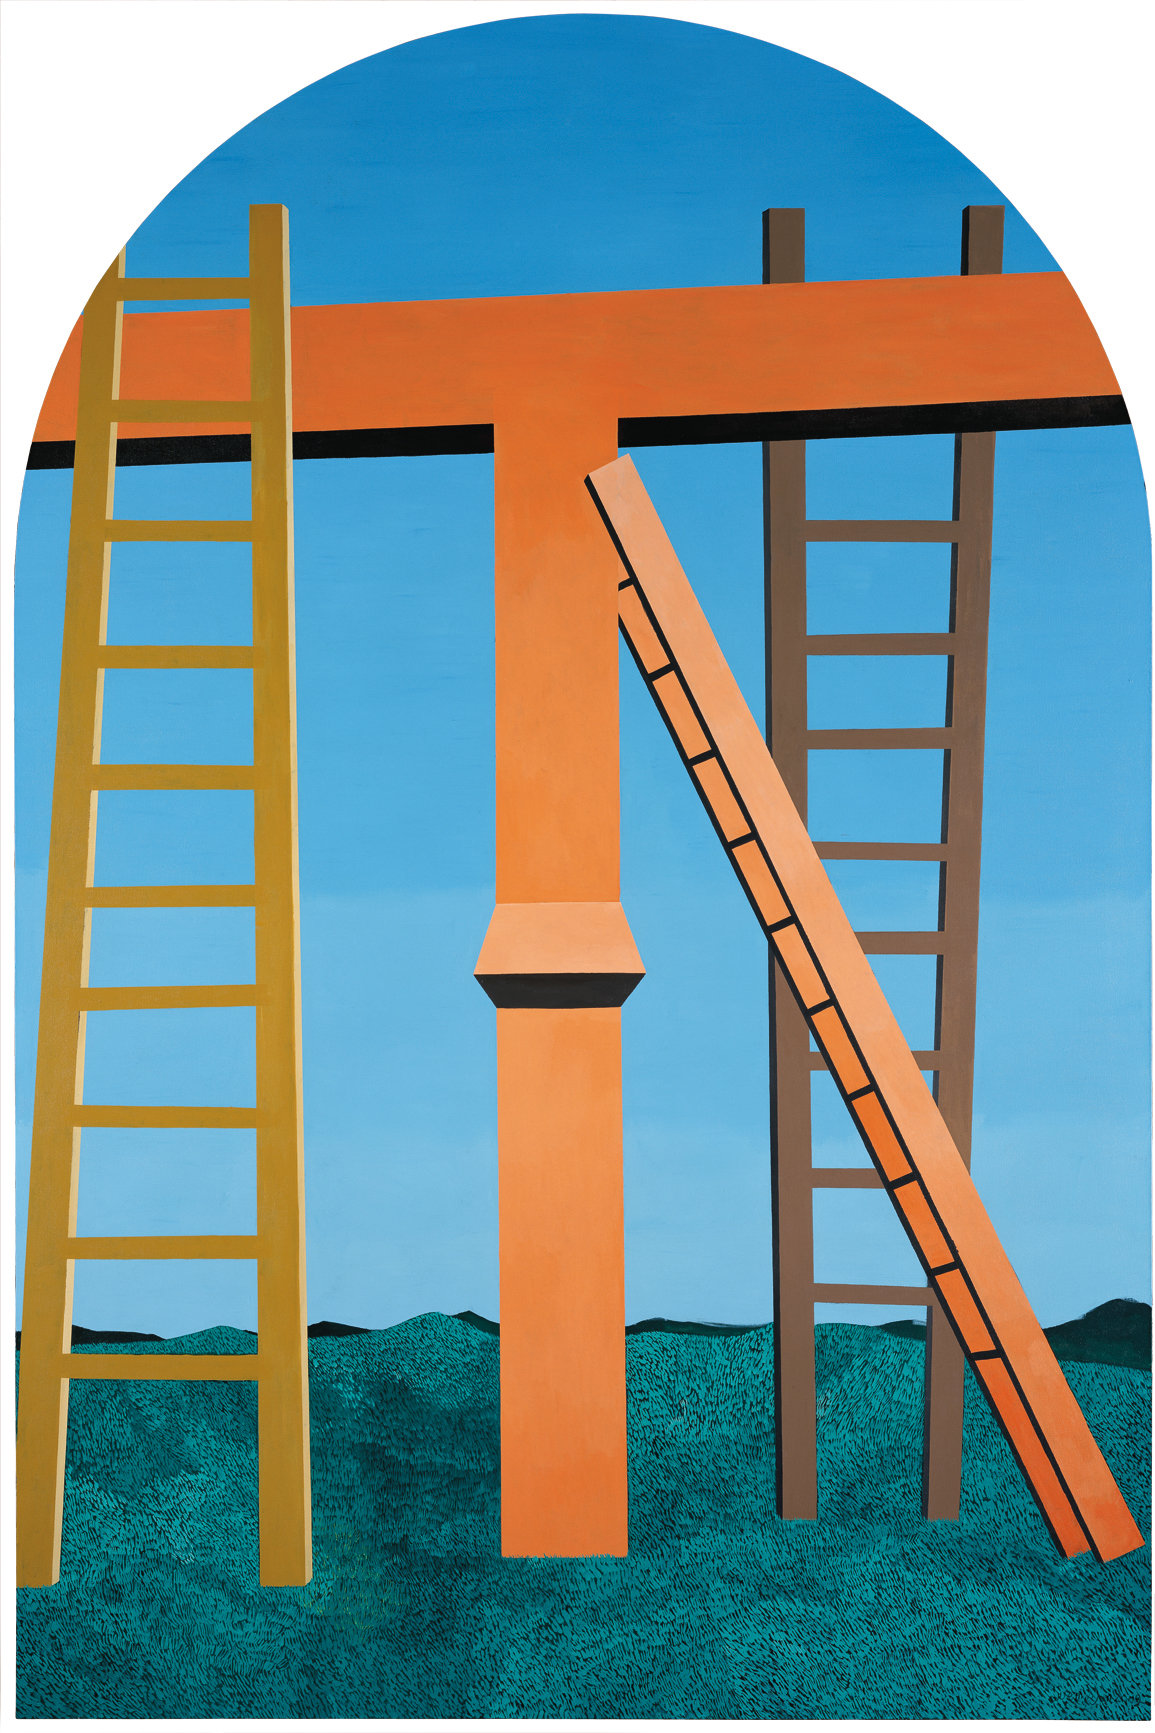 , 2009. Oil on canvas, 450cm × 300 cm.